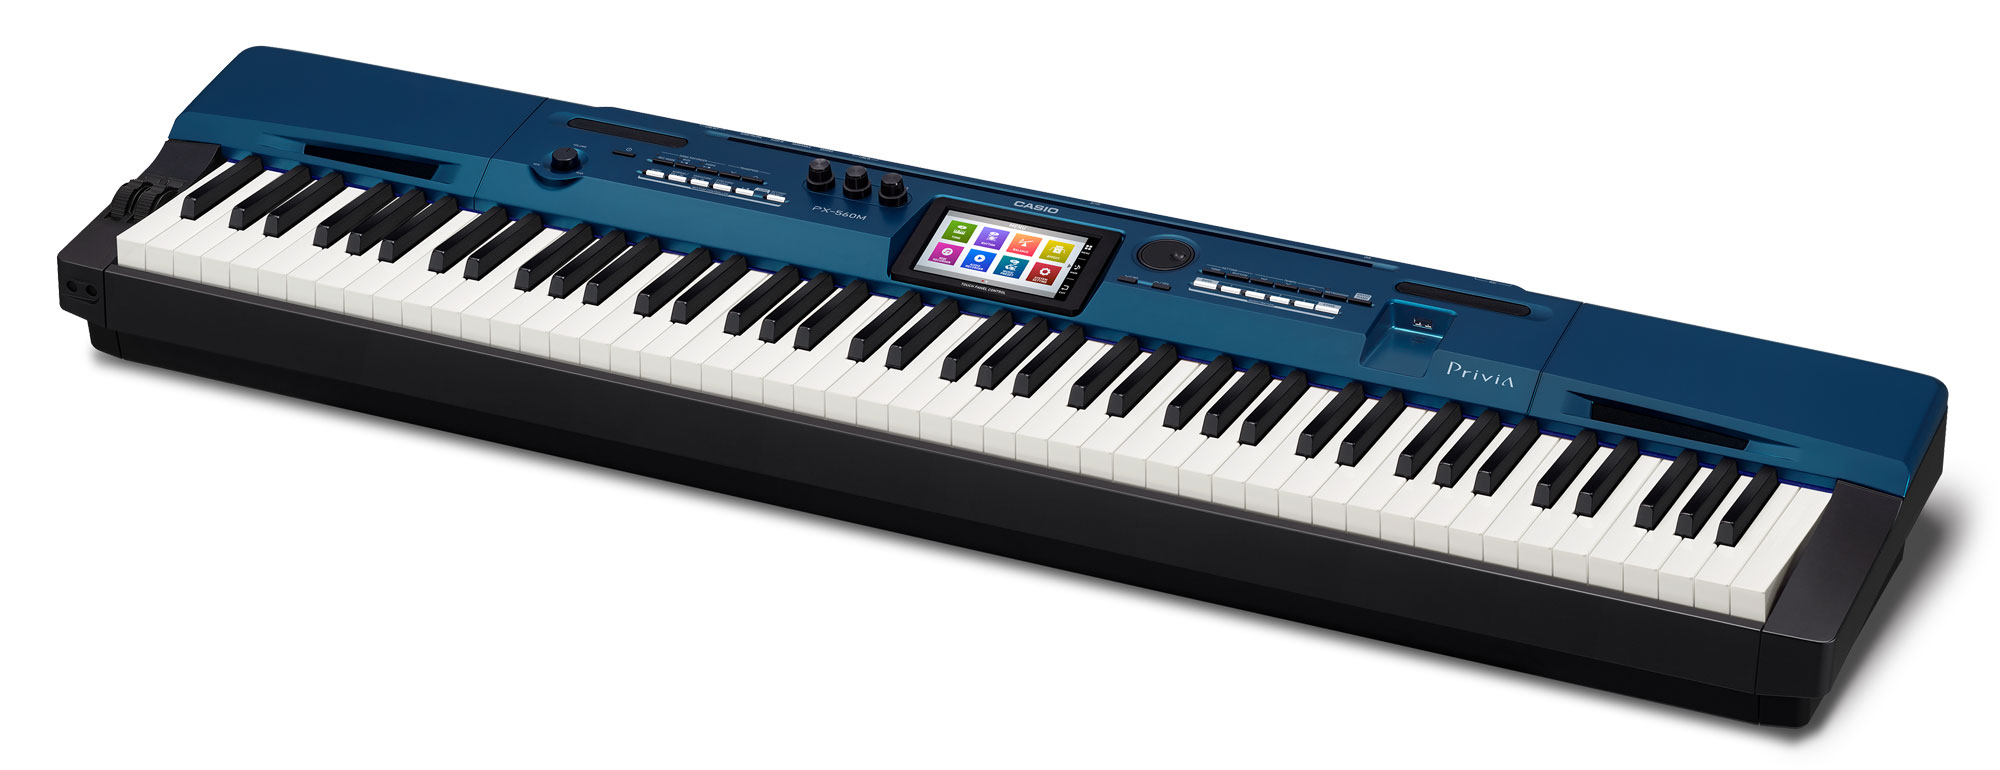 Casio Privia PX 560 MBE Stagepiano Blau